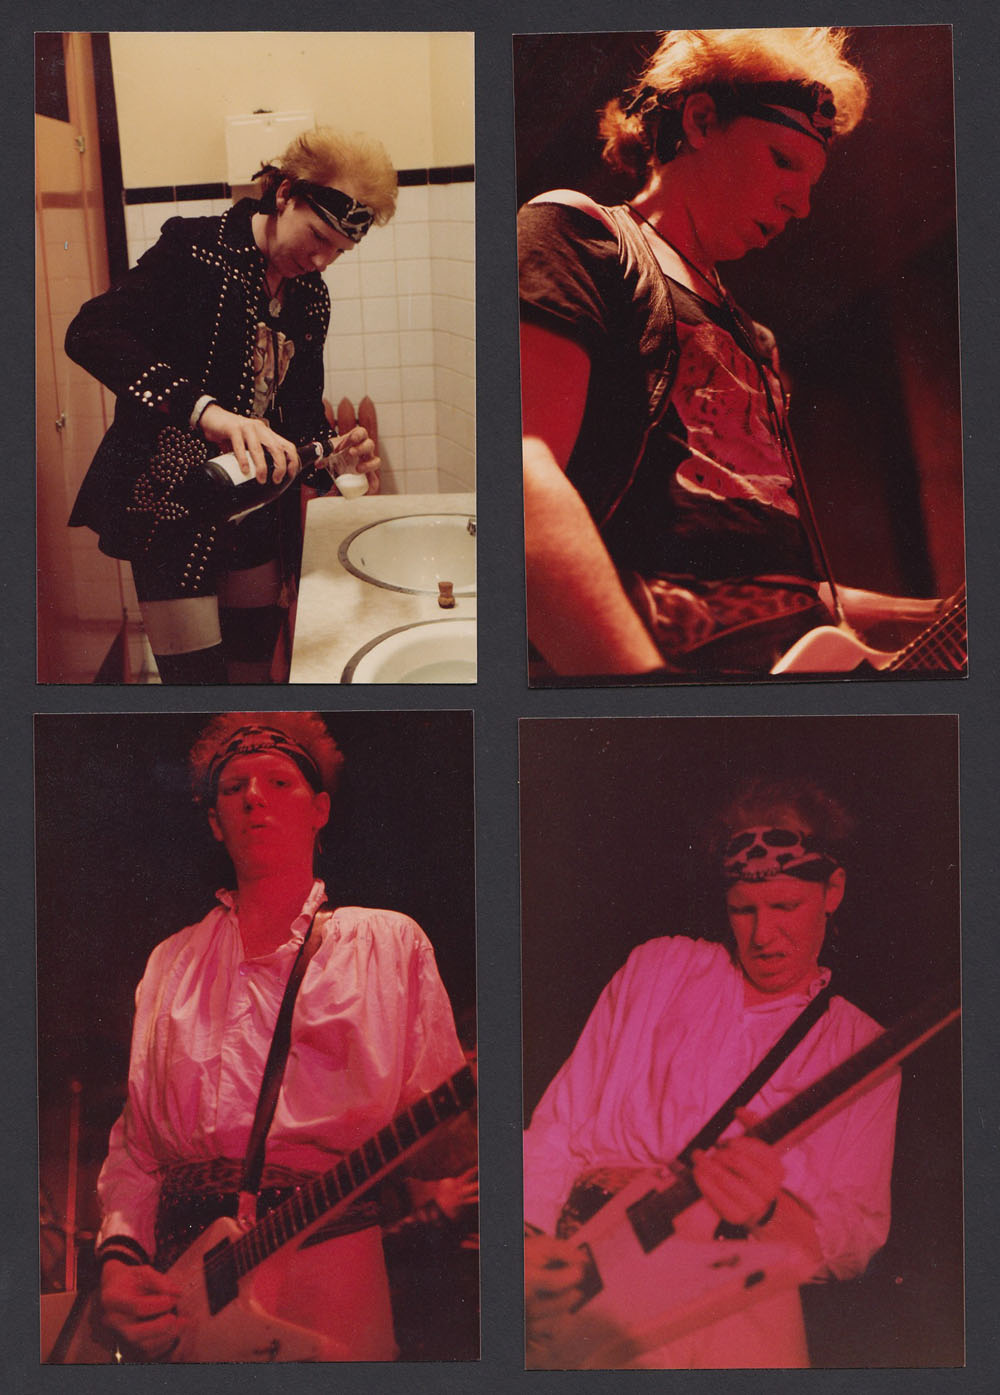 DEAD BOYS photo set